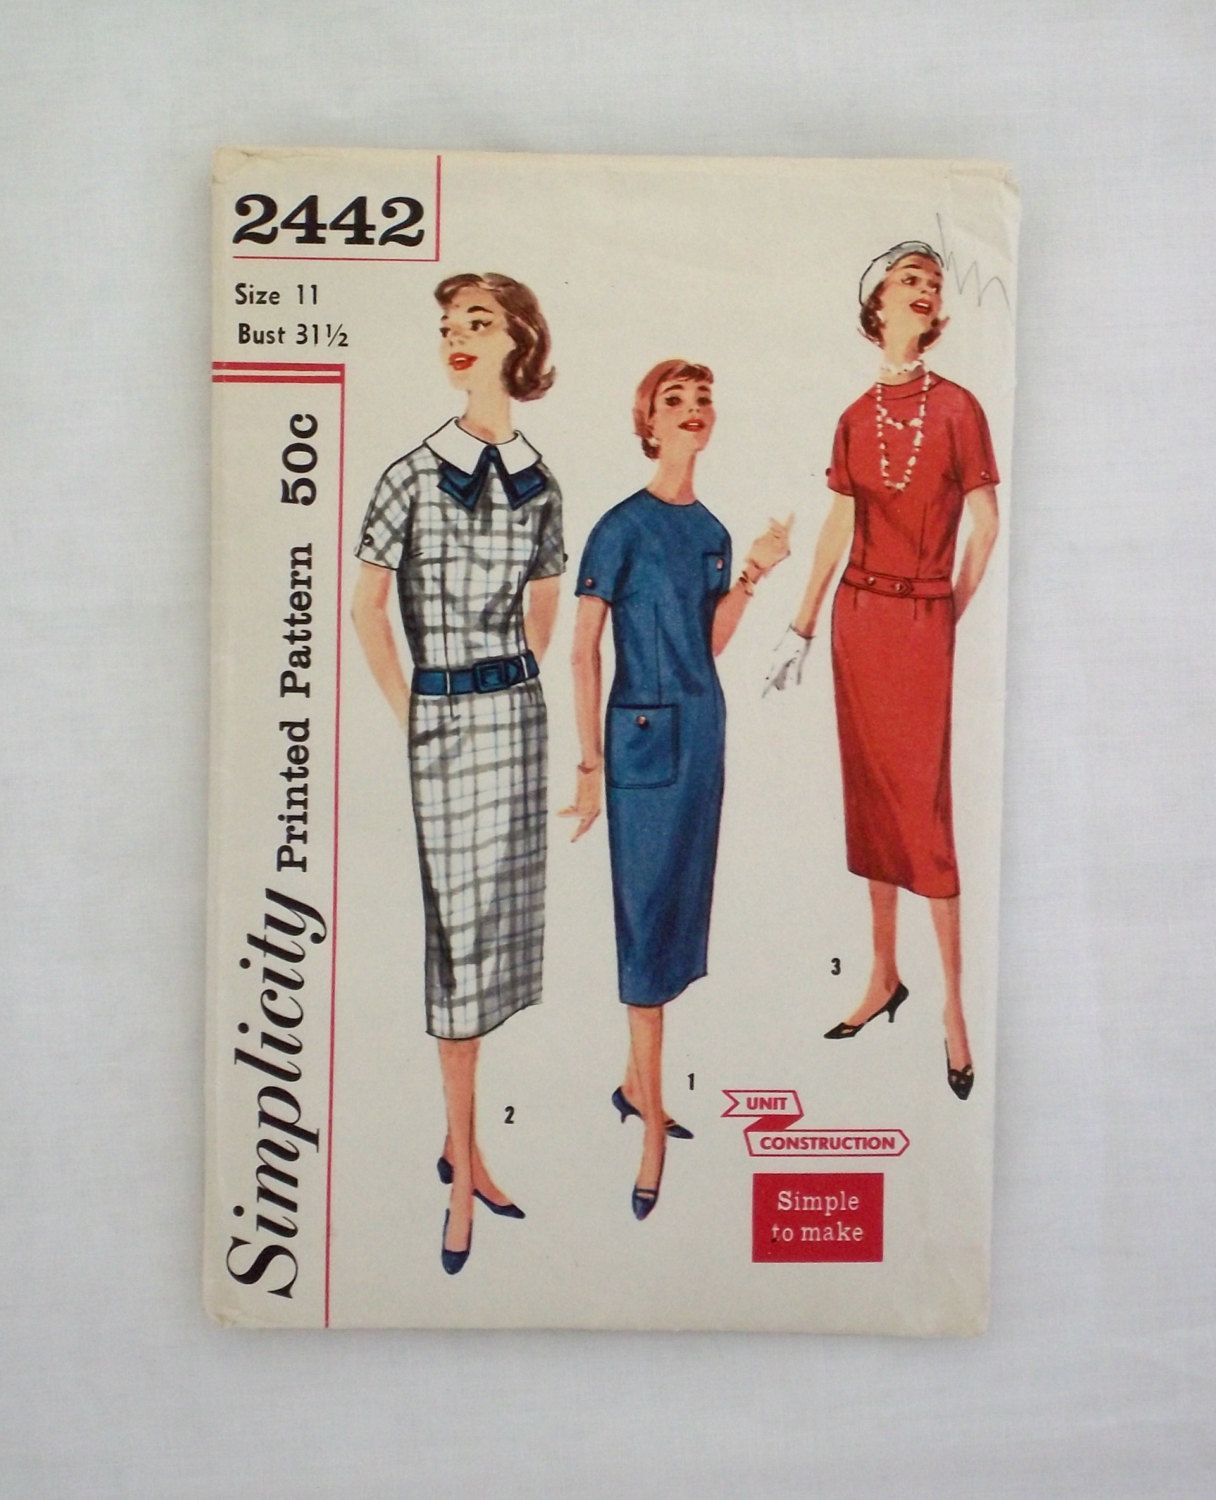 Vintage Simplicity dress pattern 2442 size 11 1958 sewing pattern ...